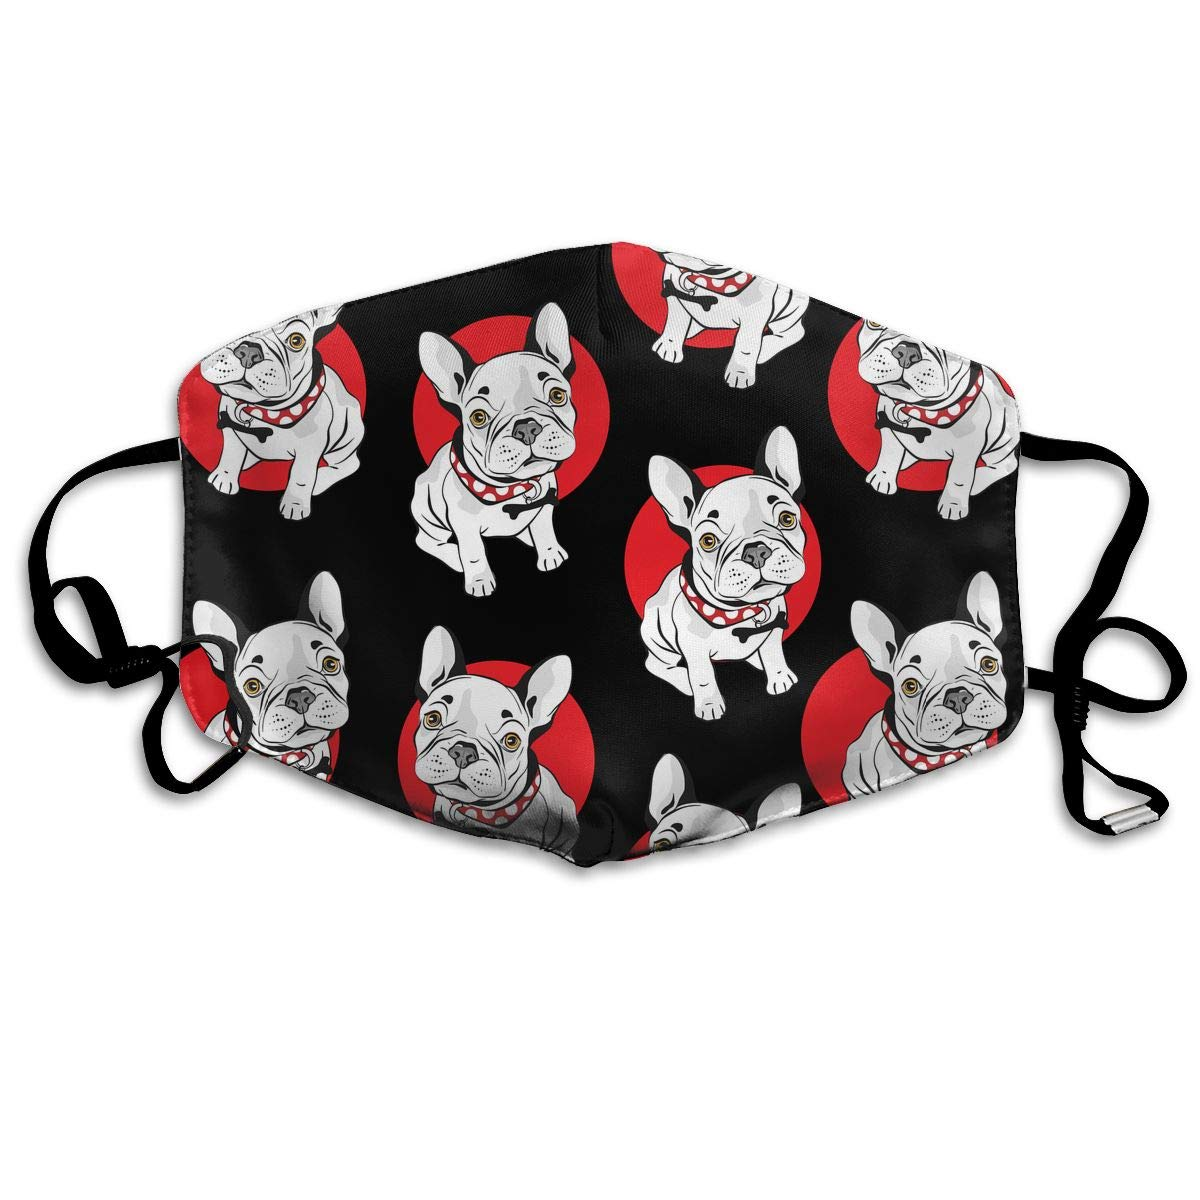 Fashion French Bulldog Washable Reusable   Mask, Cotton Anti Dust Half Face Mouth Mask For Kids Teens Men Women With Adjustable